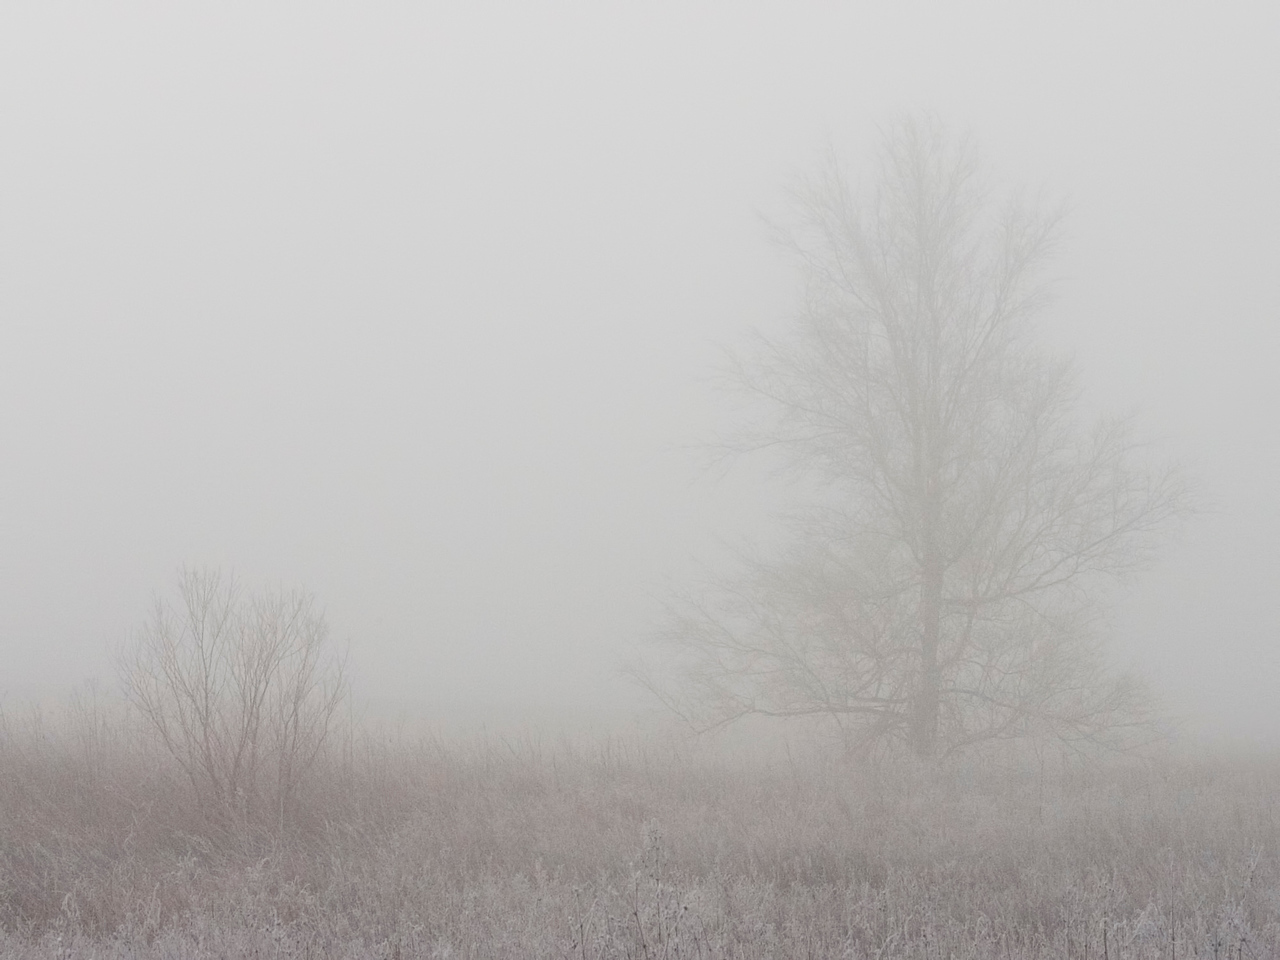 February 2 - Freezing Fog, Logan County Illinois